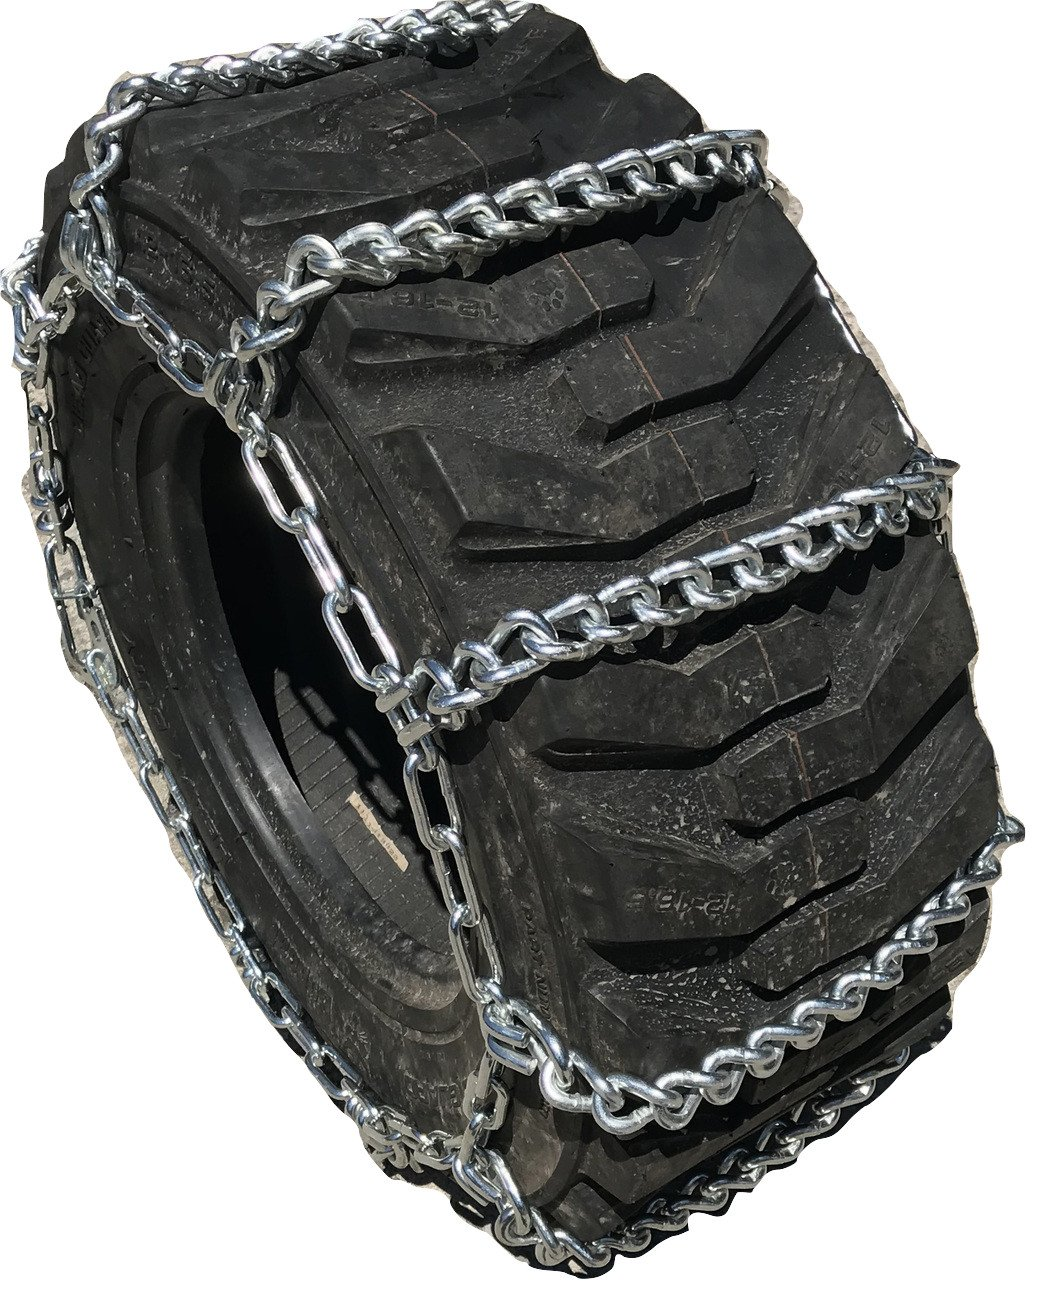 TireChain.com 10 16.5 10-16.5 Ladder Tractor Tire Chains Set of 2 by TireChain.com (Image #1)